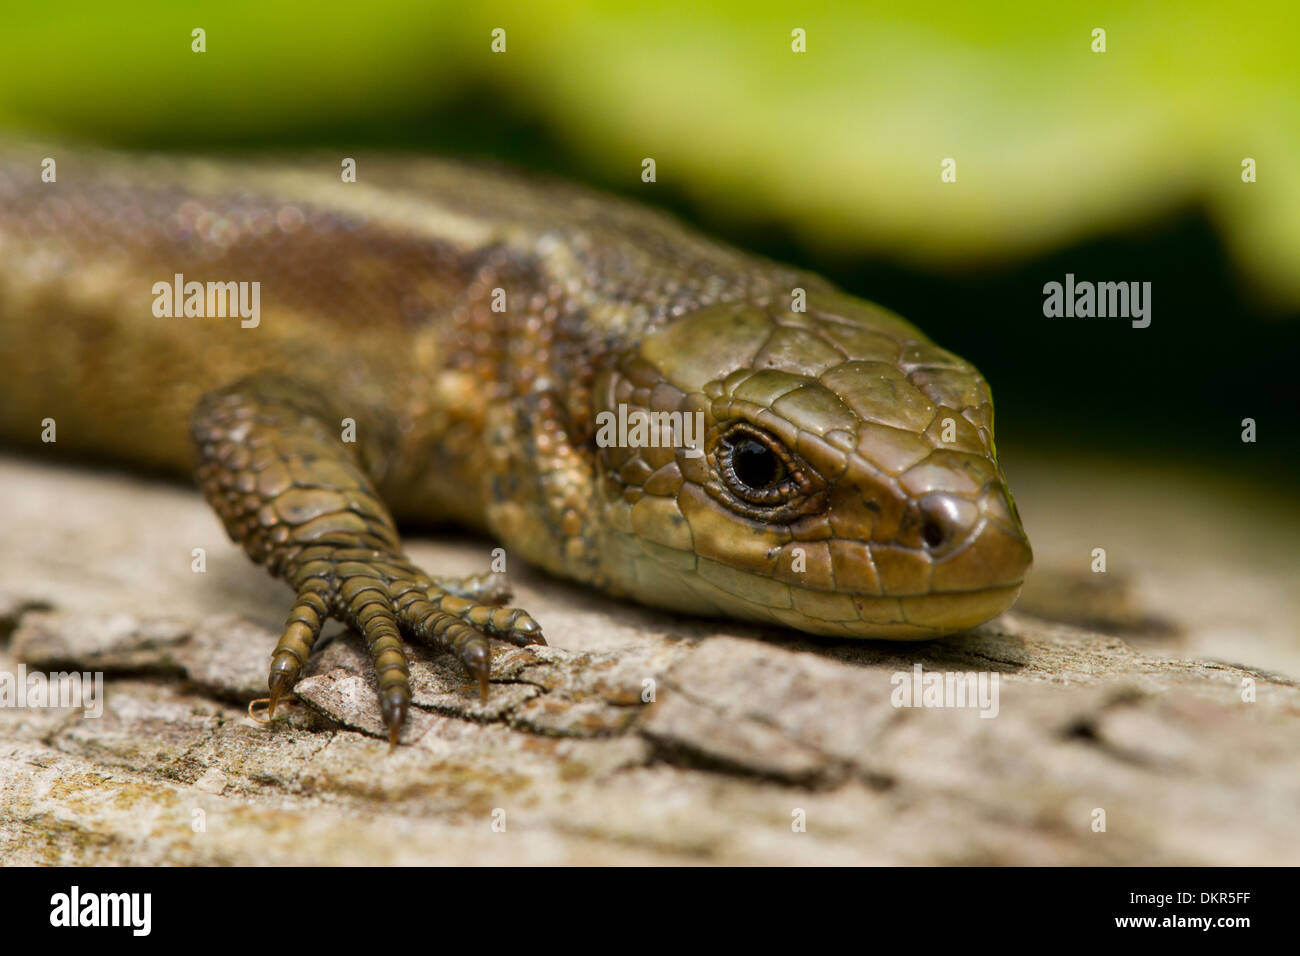 Common or Viviparous Lizard (Zootoca vivipara) close-up of the head of an adult female basking on a log. Sussex, England. June. Stock Photo